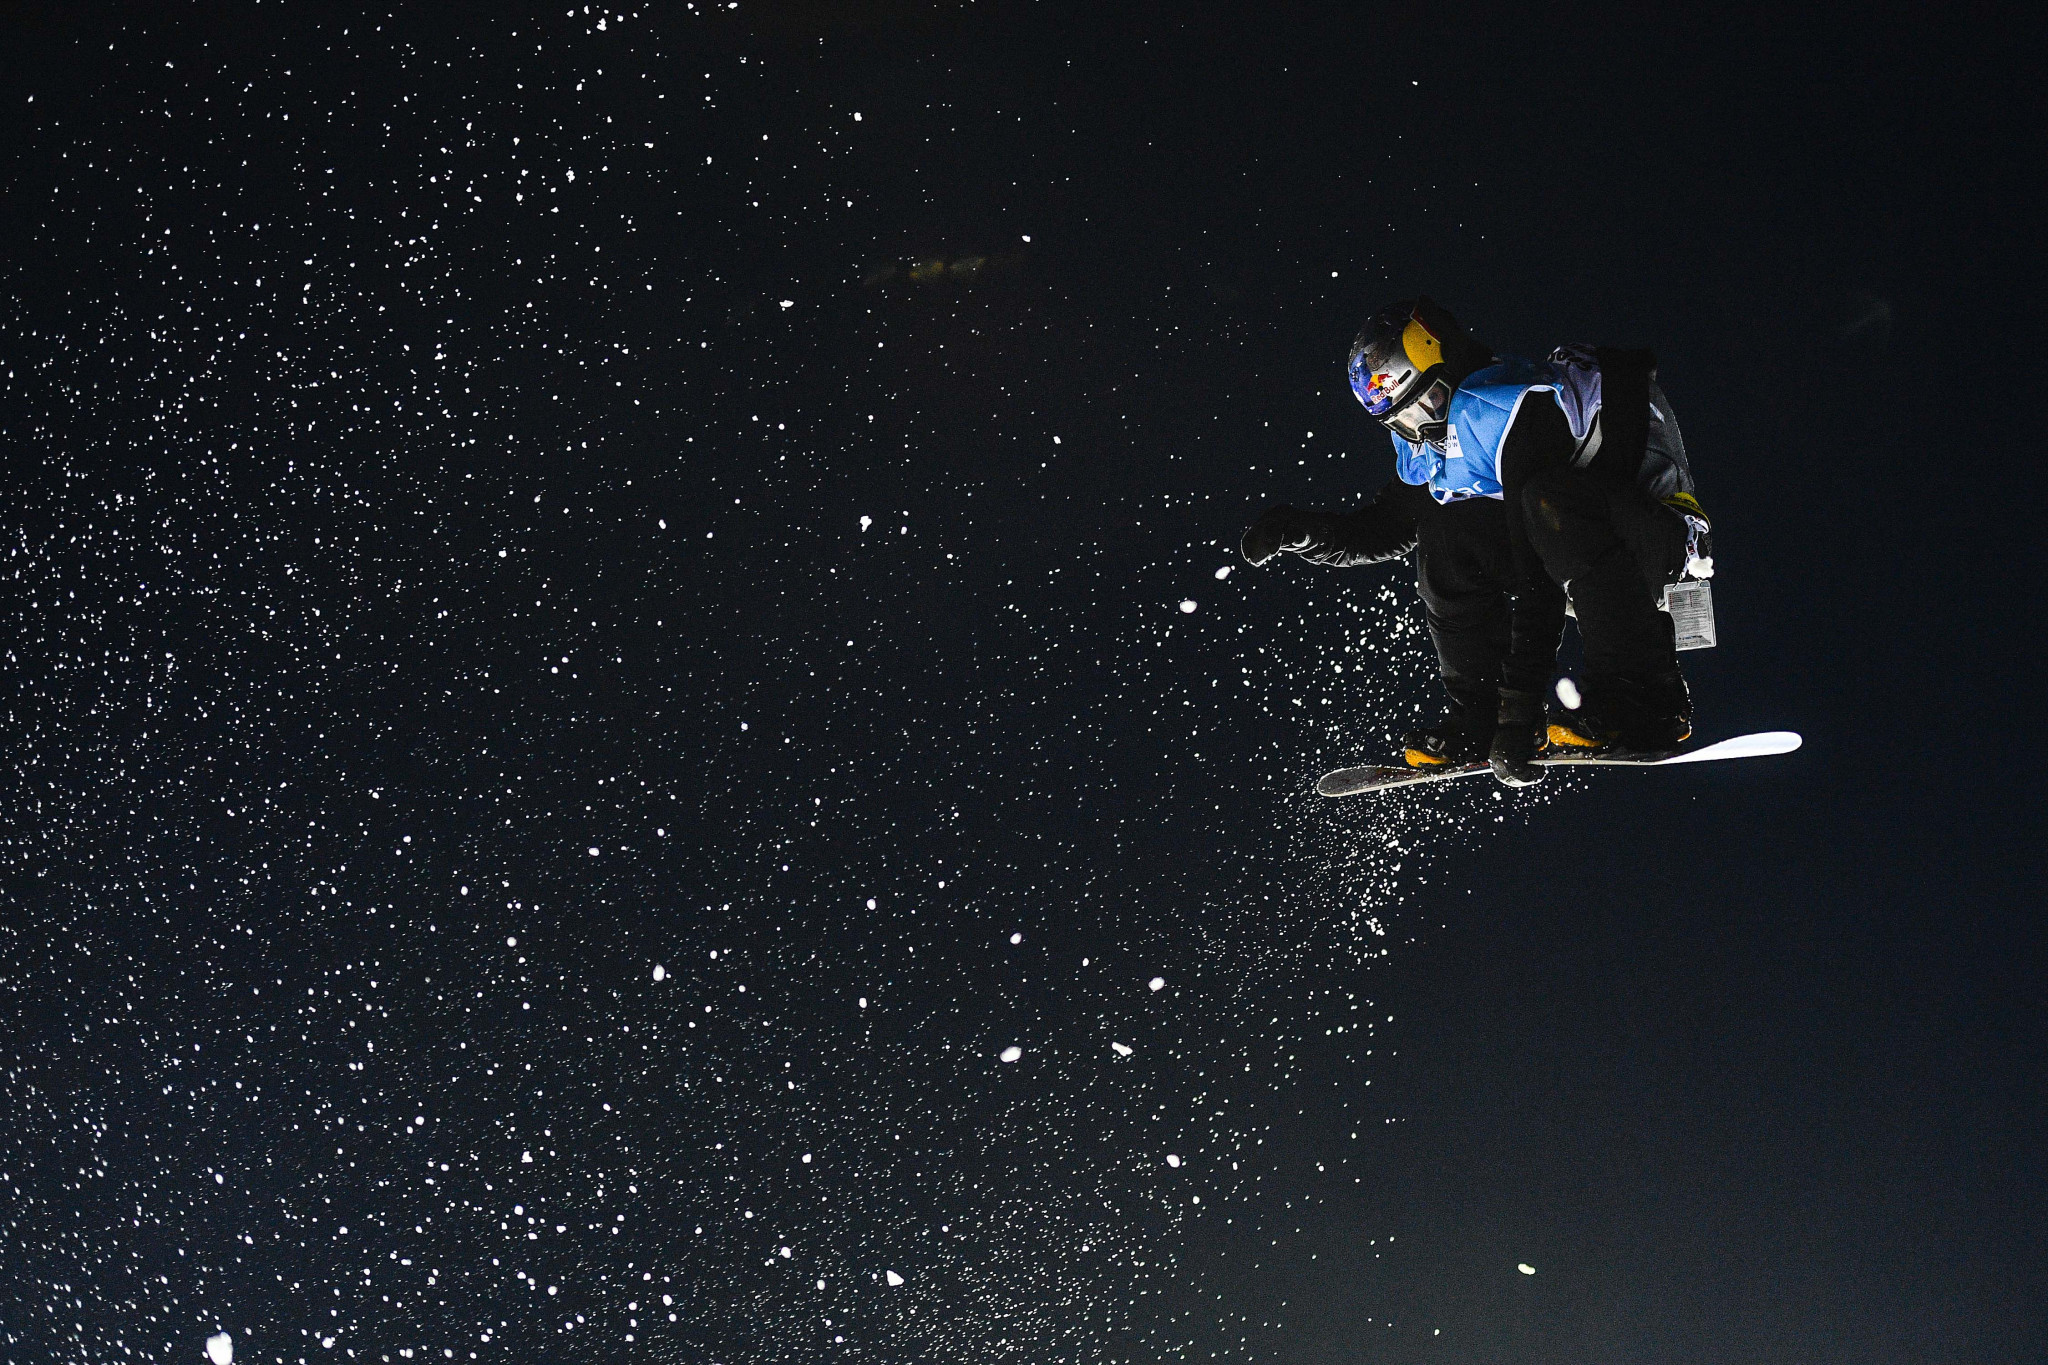 Marcus Kleveland dominated the men's competition today ©Getty Images